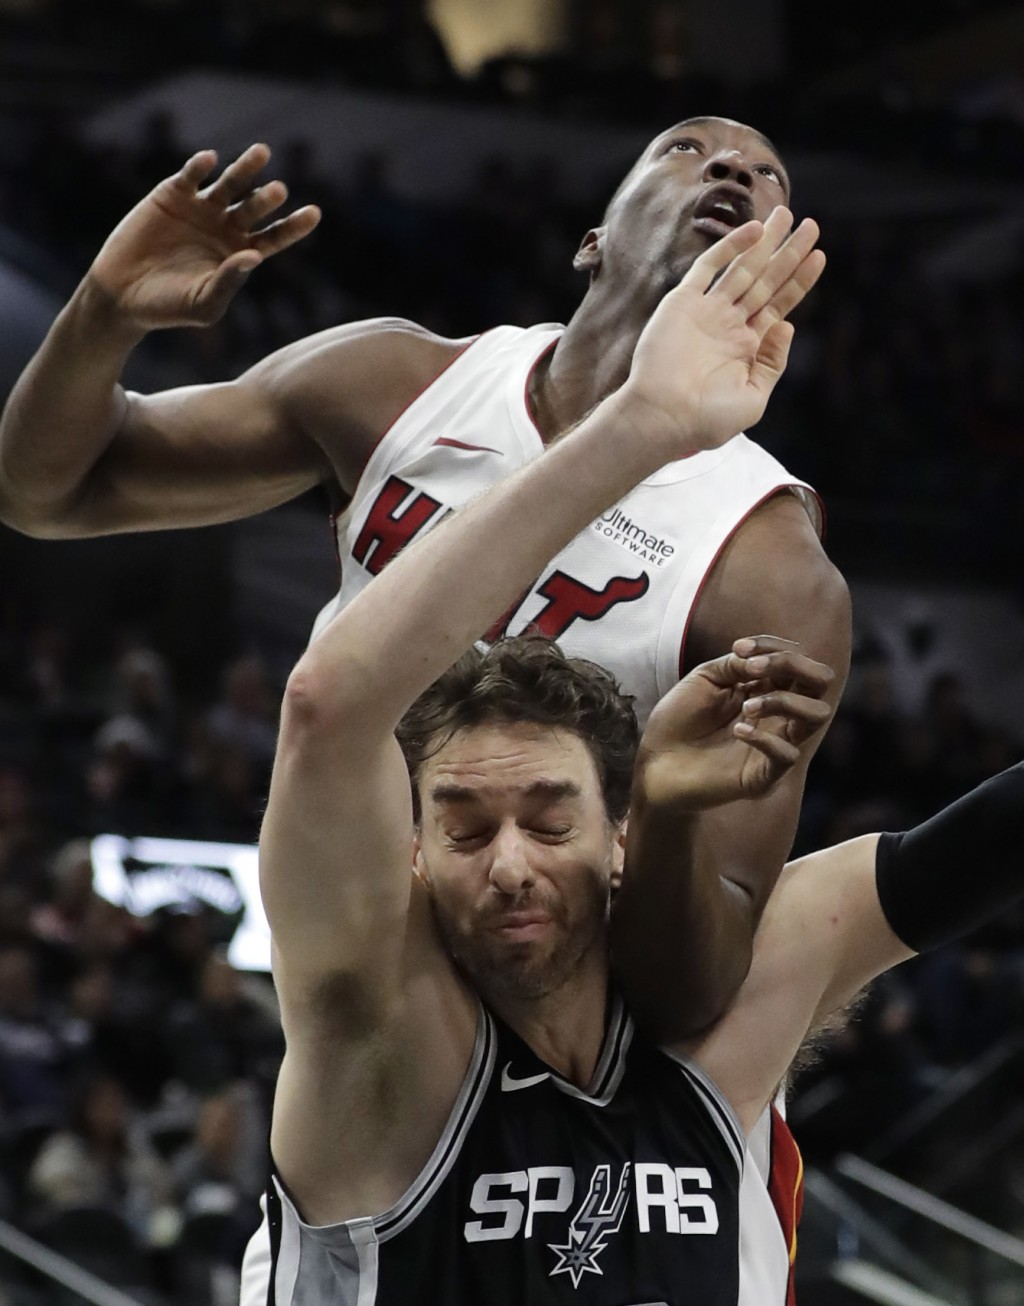 Miami Heat center Bam Adebayo, top, and San Antonio Spurs center Pau Gasol, bottom, jockey for position for a rebound during the first half of an NBA